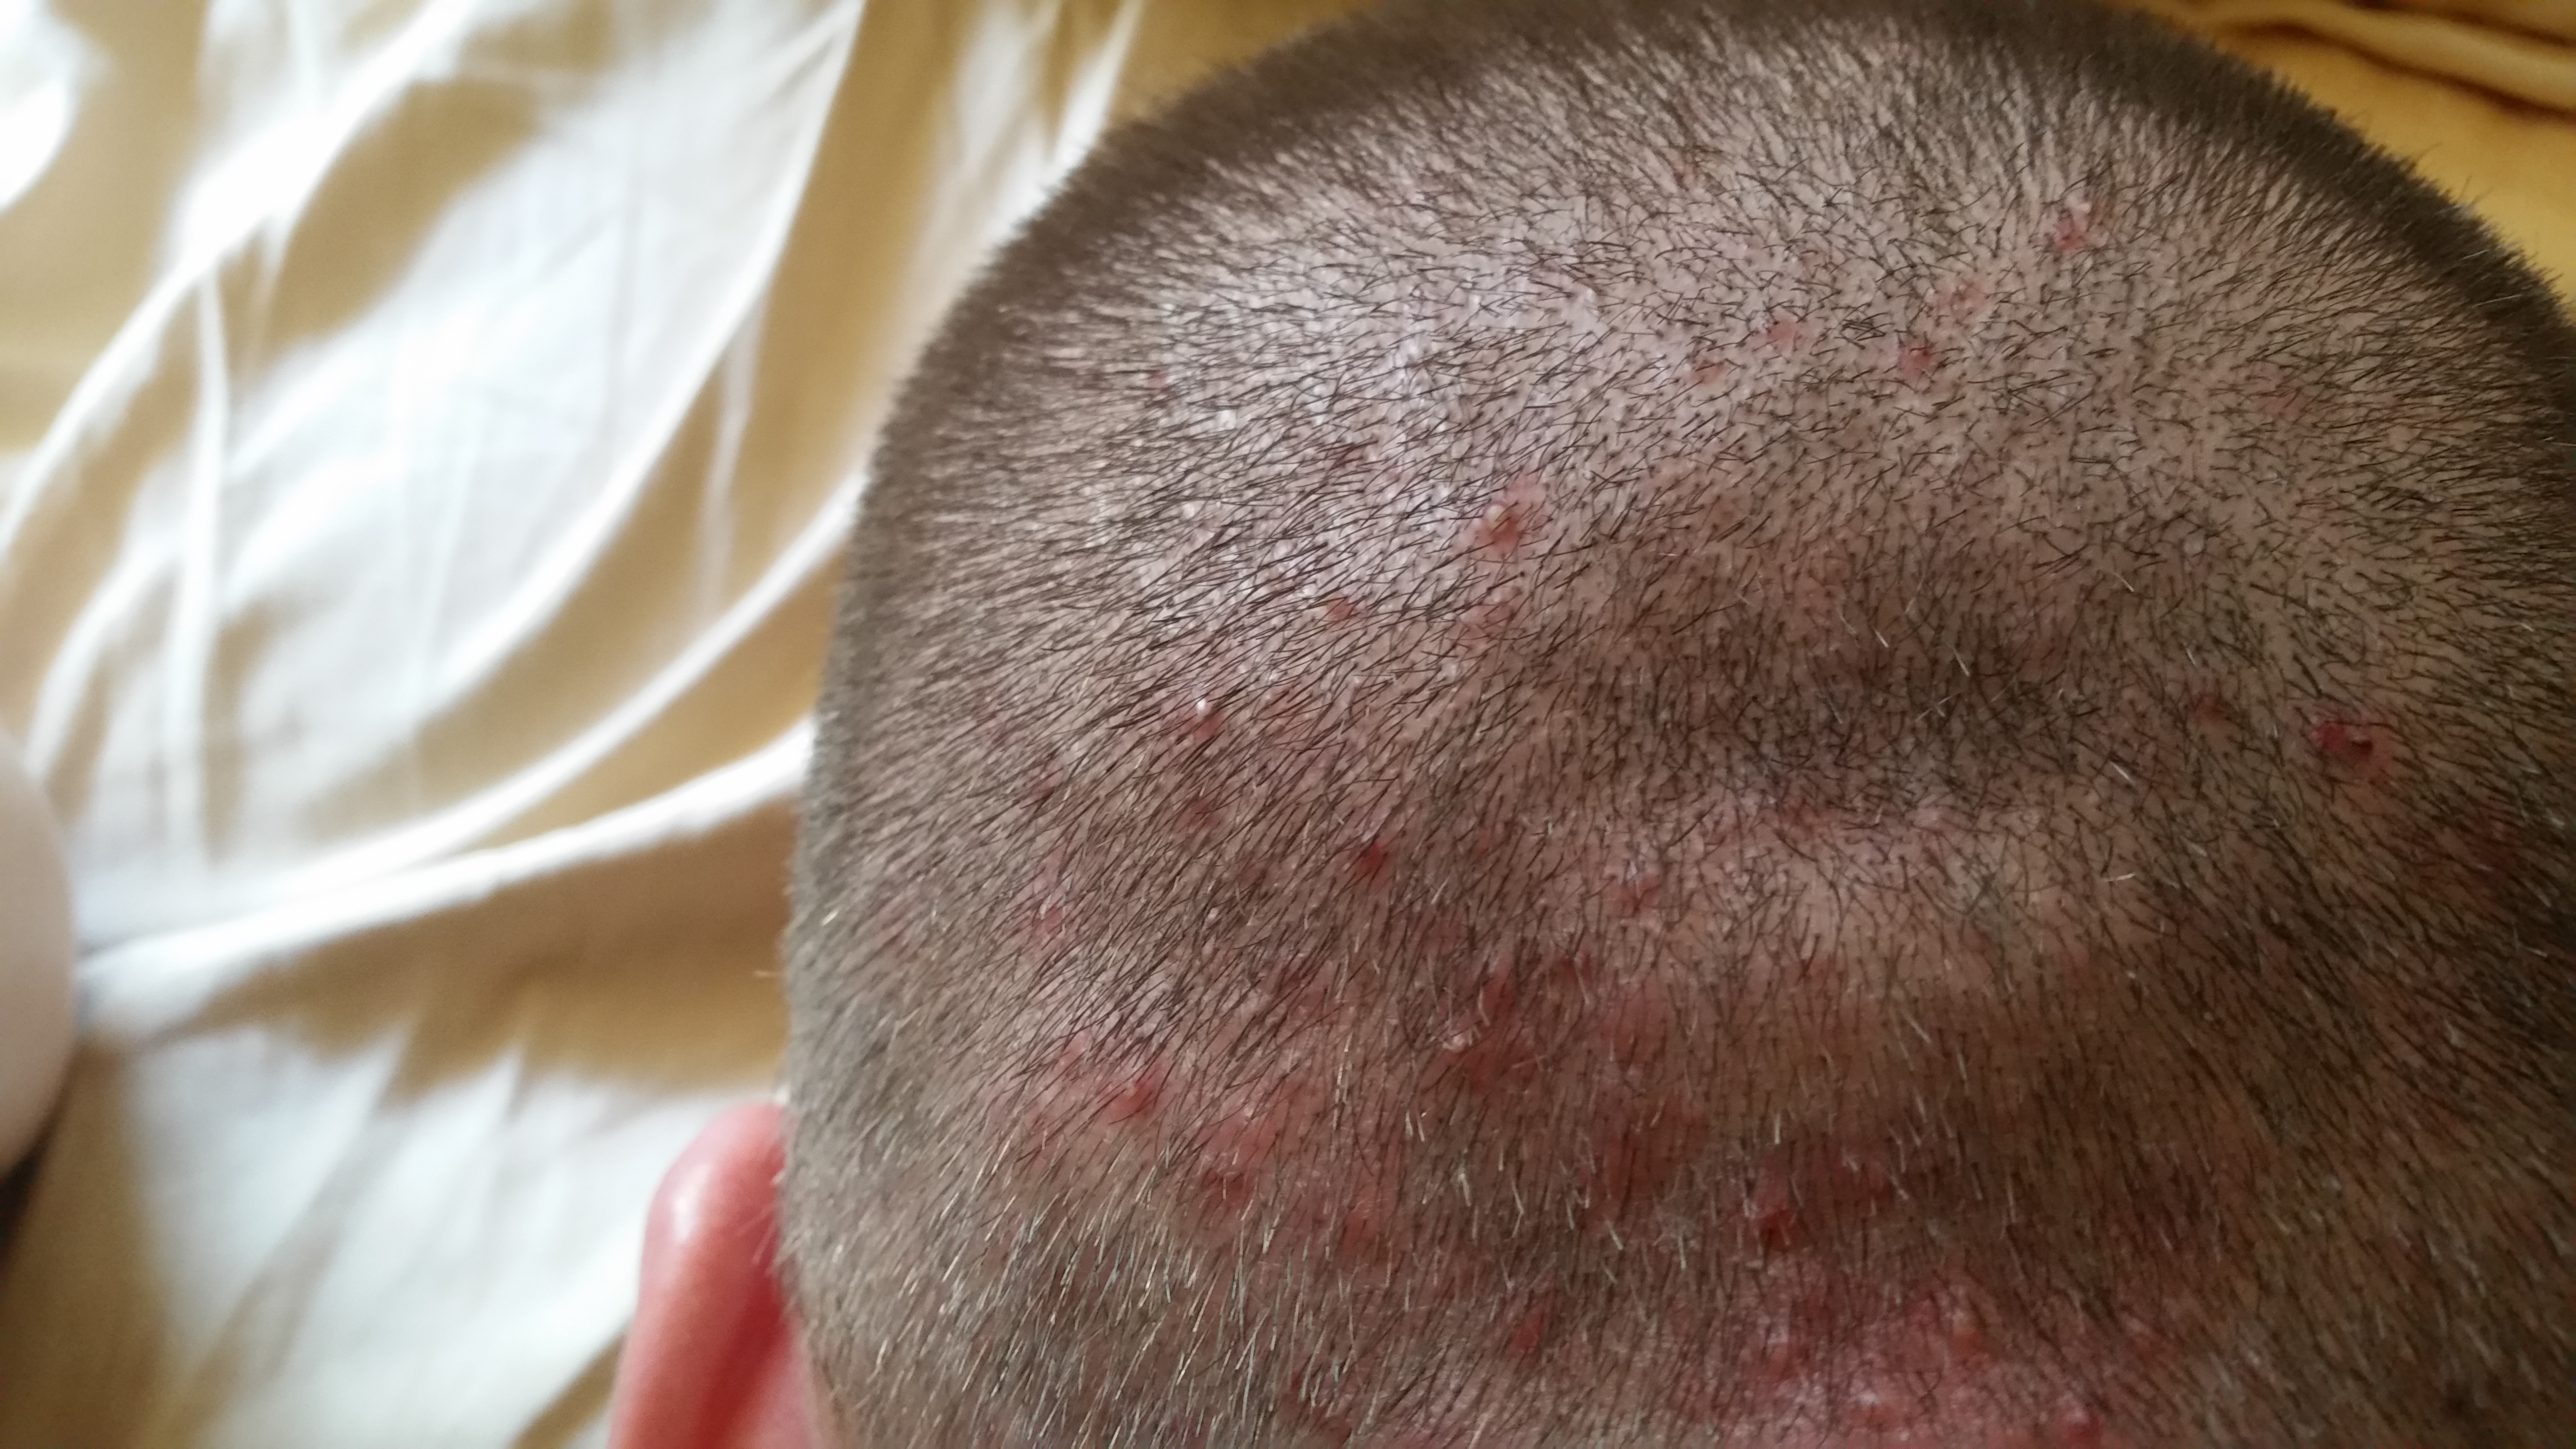 Scalp Acnefolliculitis Pictures General Acne Discussion By